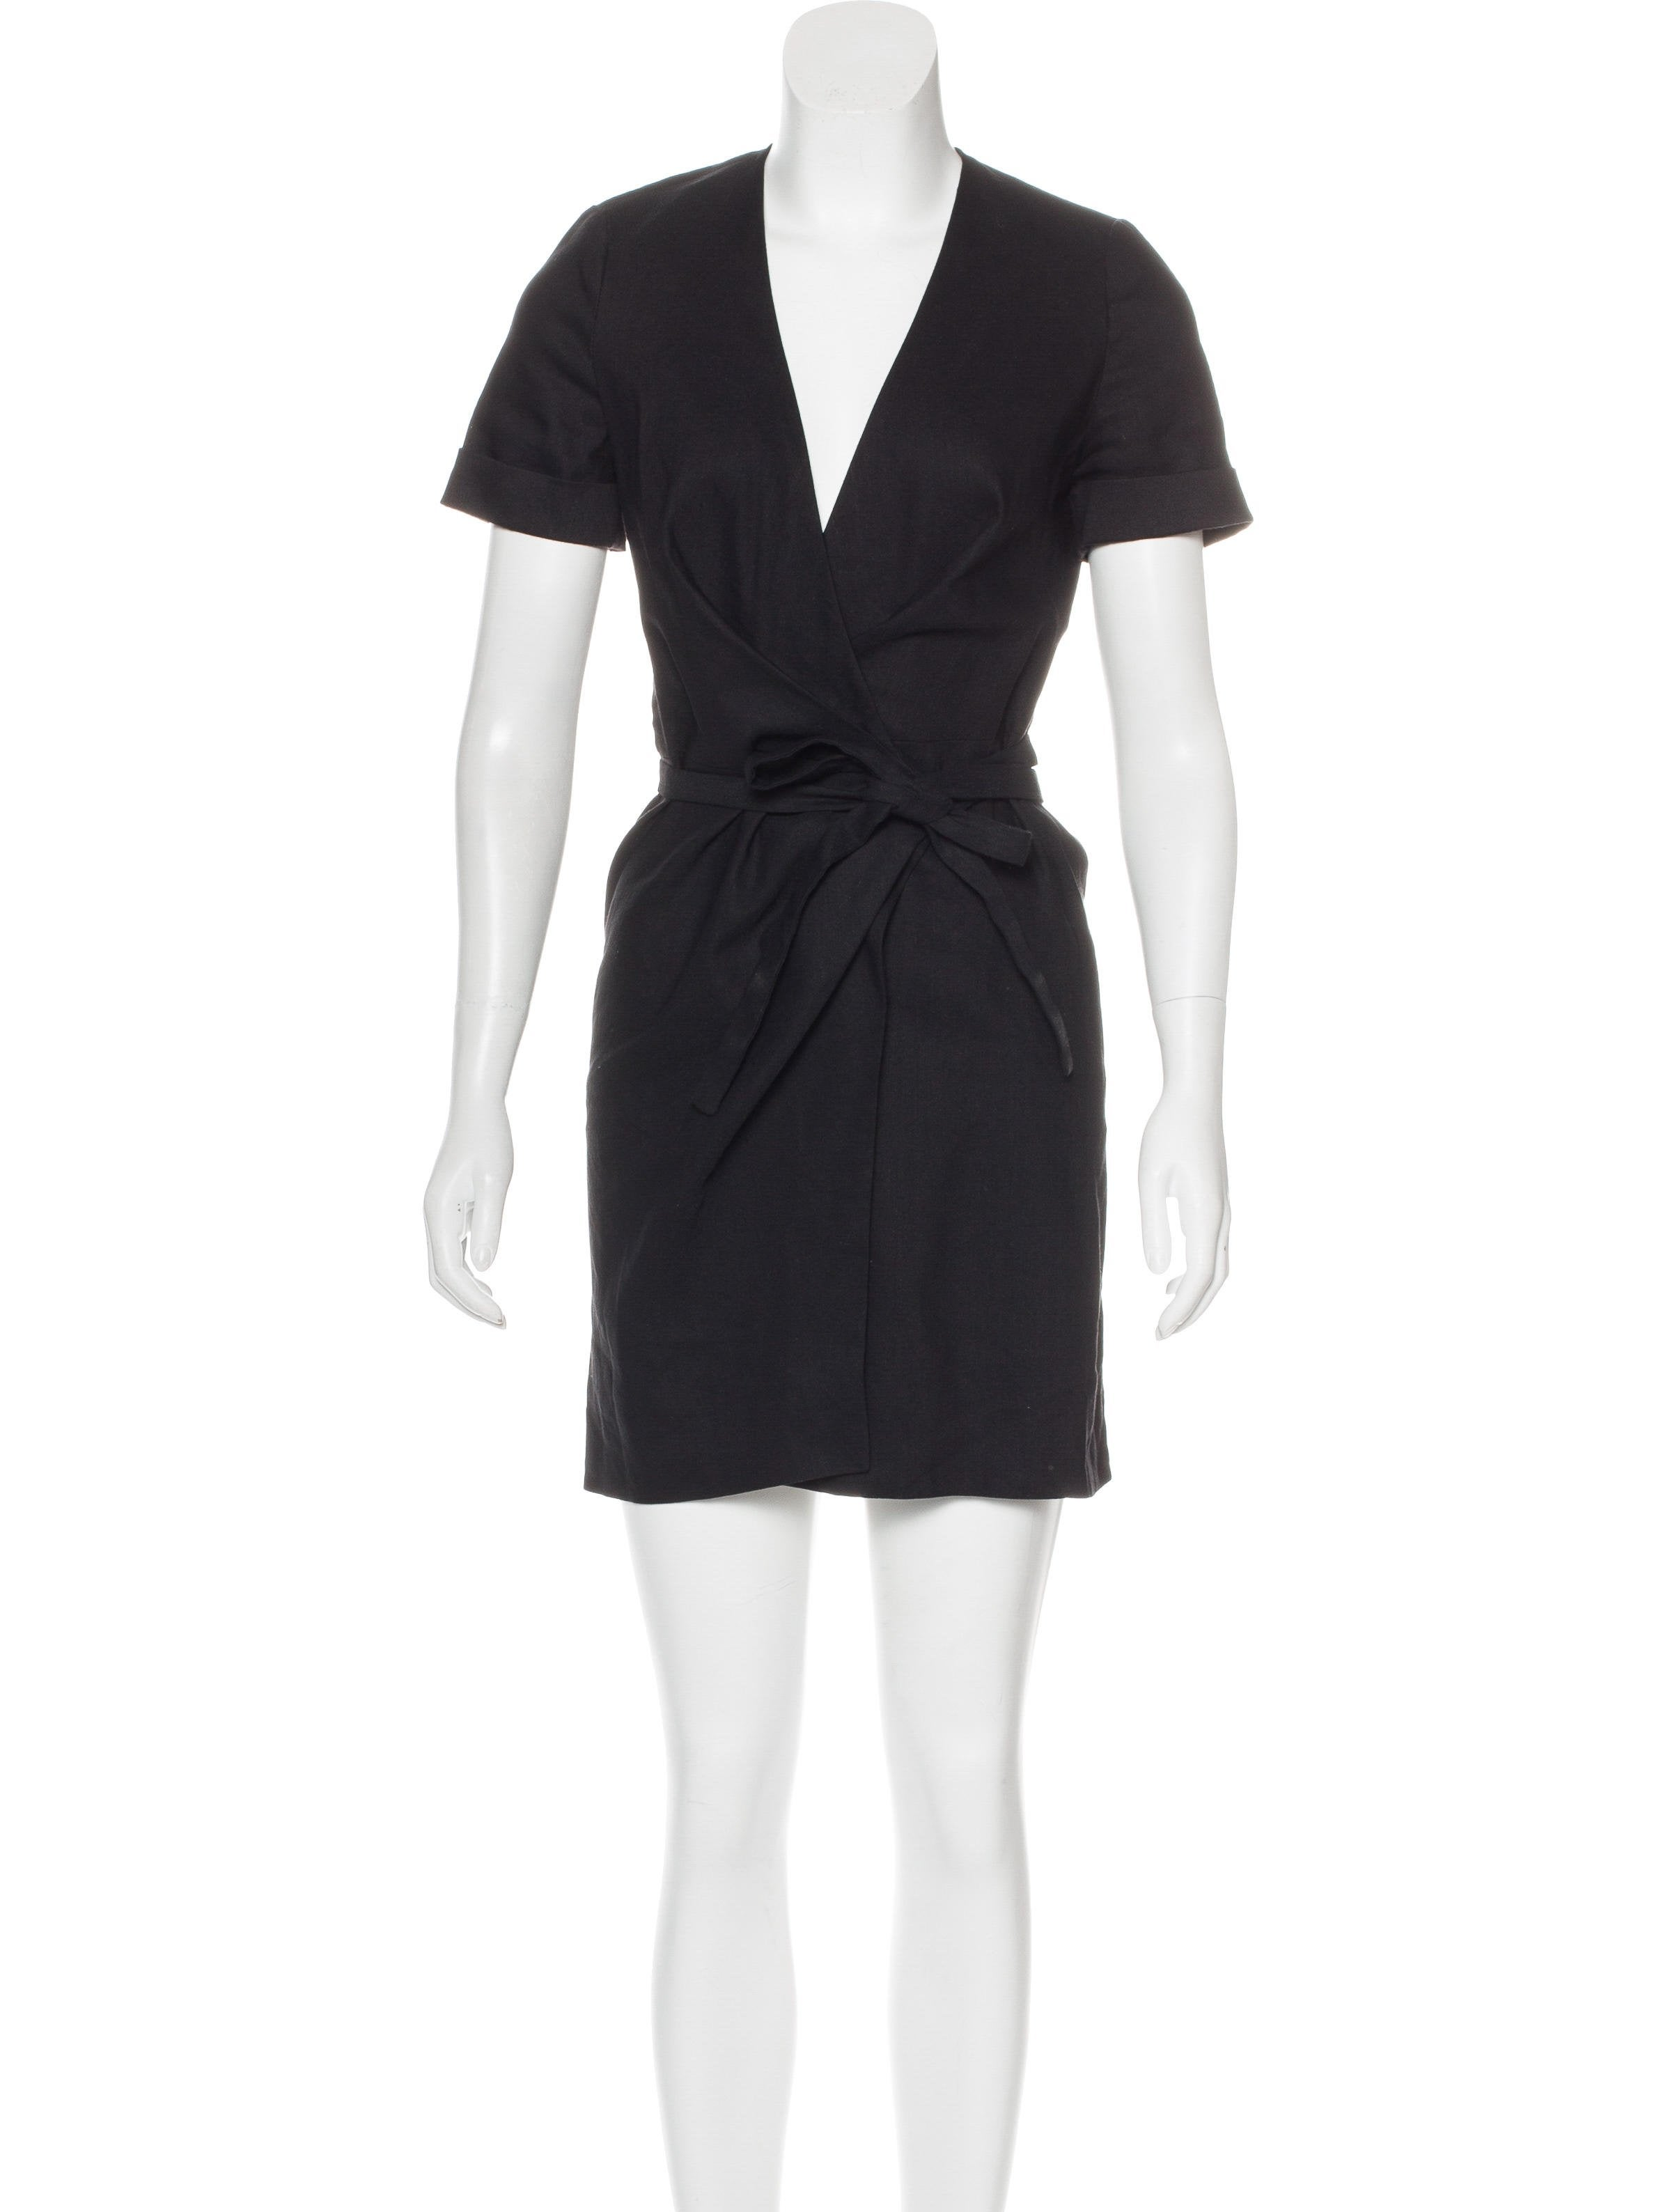 2caea18292 Étoile Isabel Marant Kansas Wrap Dress w  Tags - Clothing - WET42383 ...